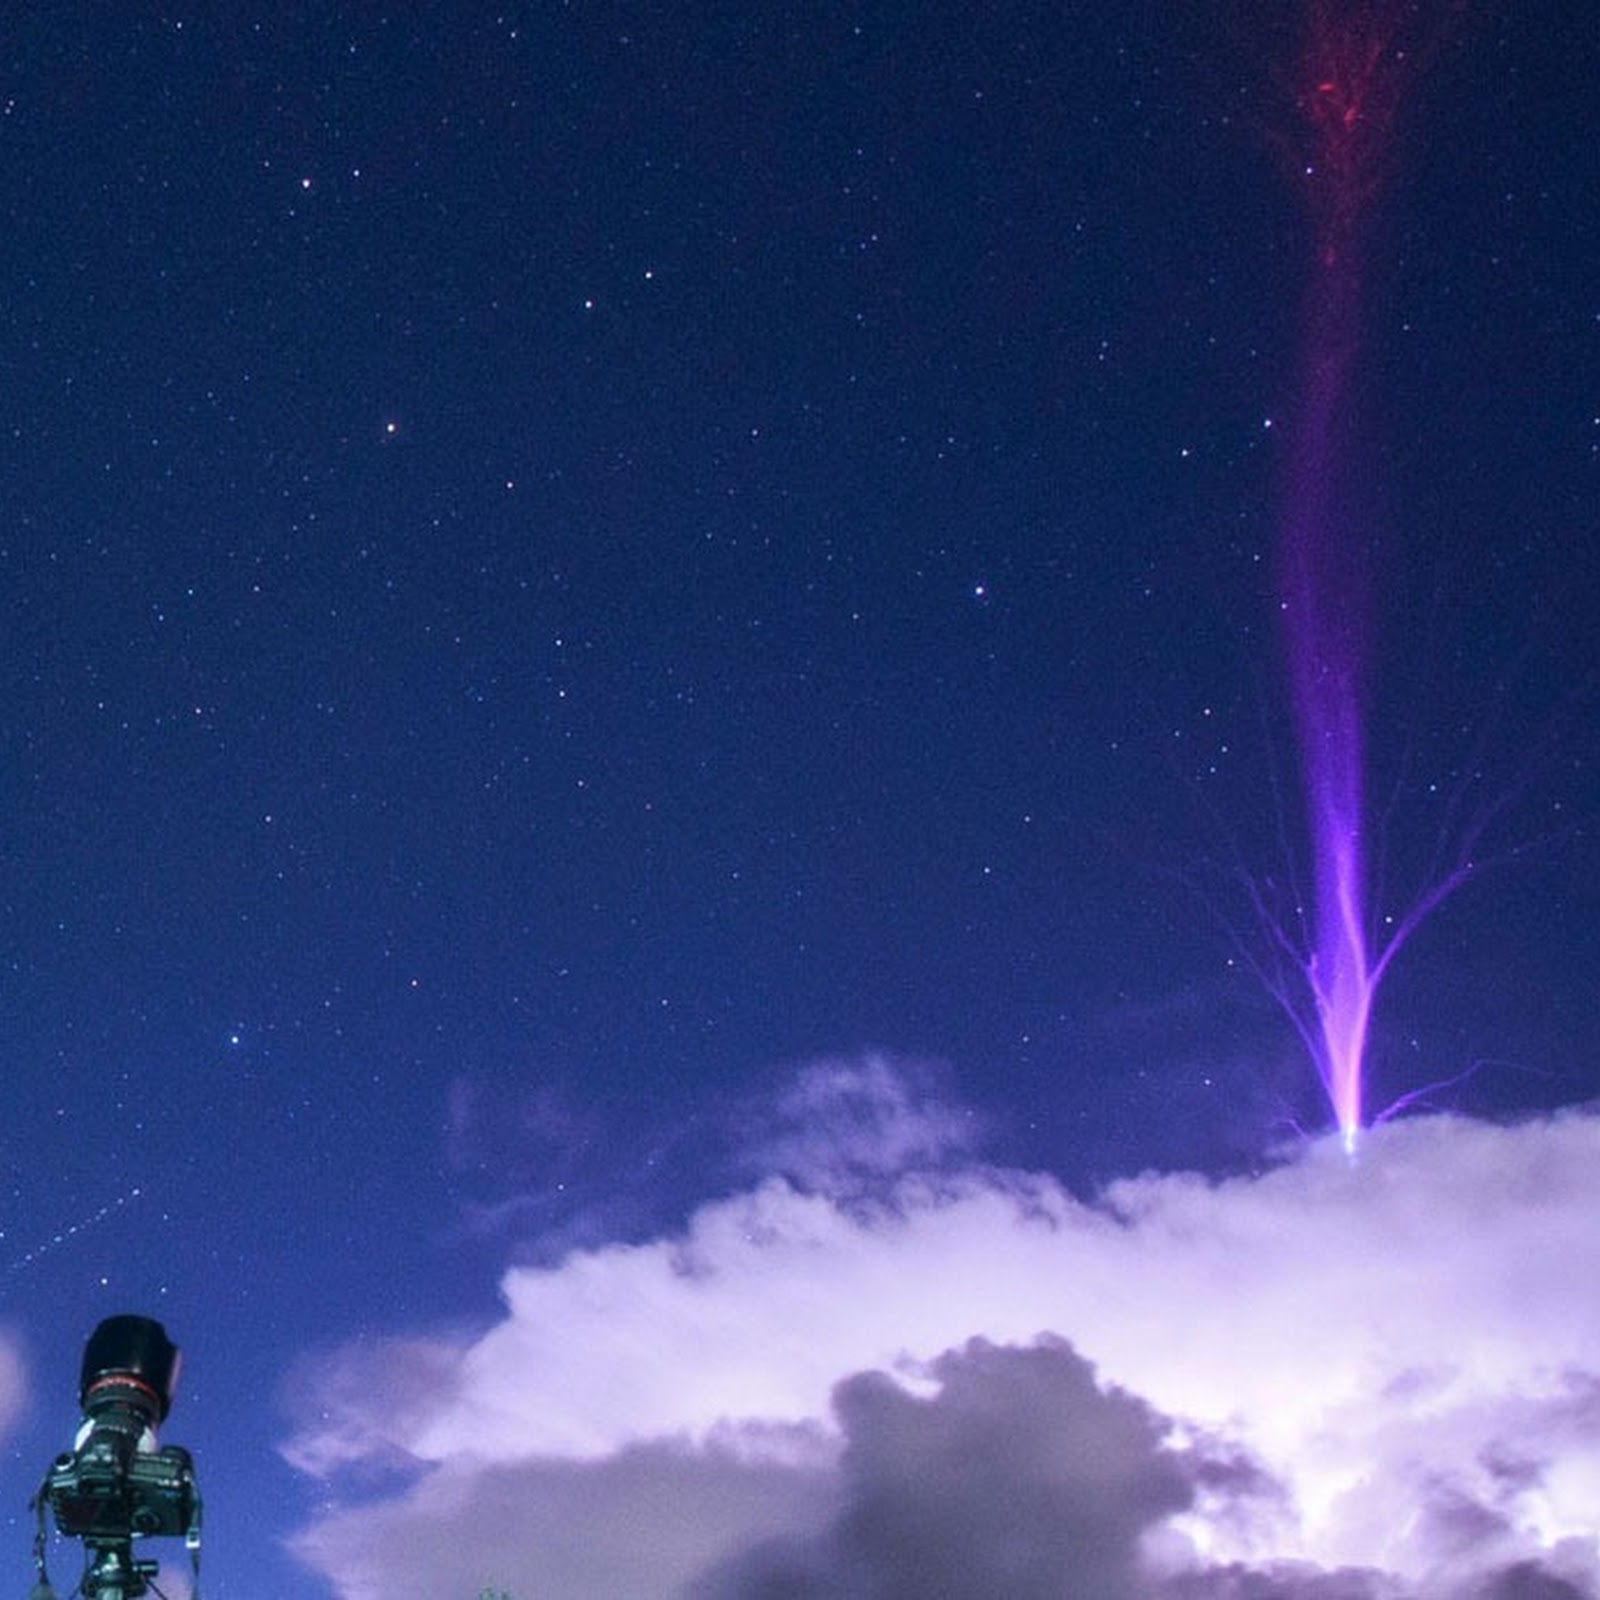 The Elusive Gigantic Jets of Lightning